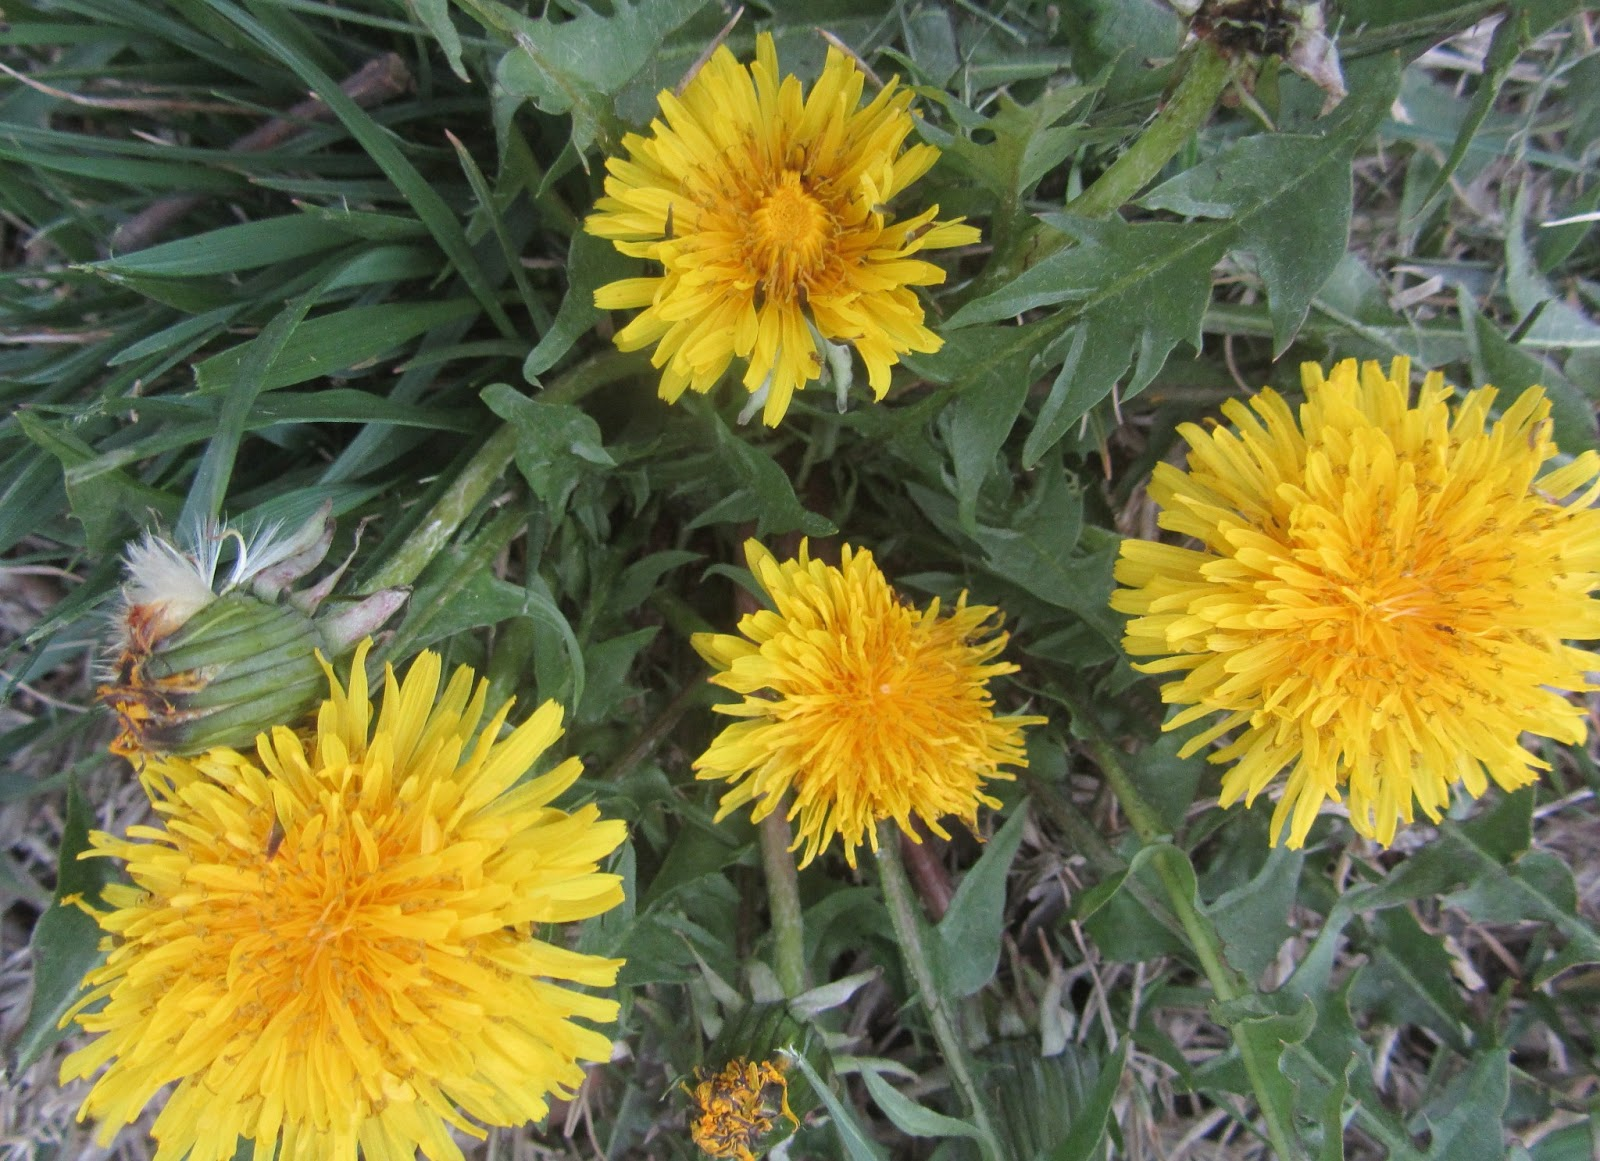 Lizziekate blog think deeply about those prettypesky yellow flowers bad yellows are dotting my entire yard and flower beds bad yellows are otherwise known as dandelions they are flourishing mightylinksfo